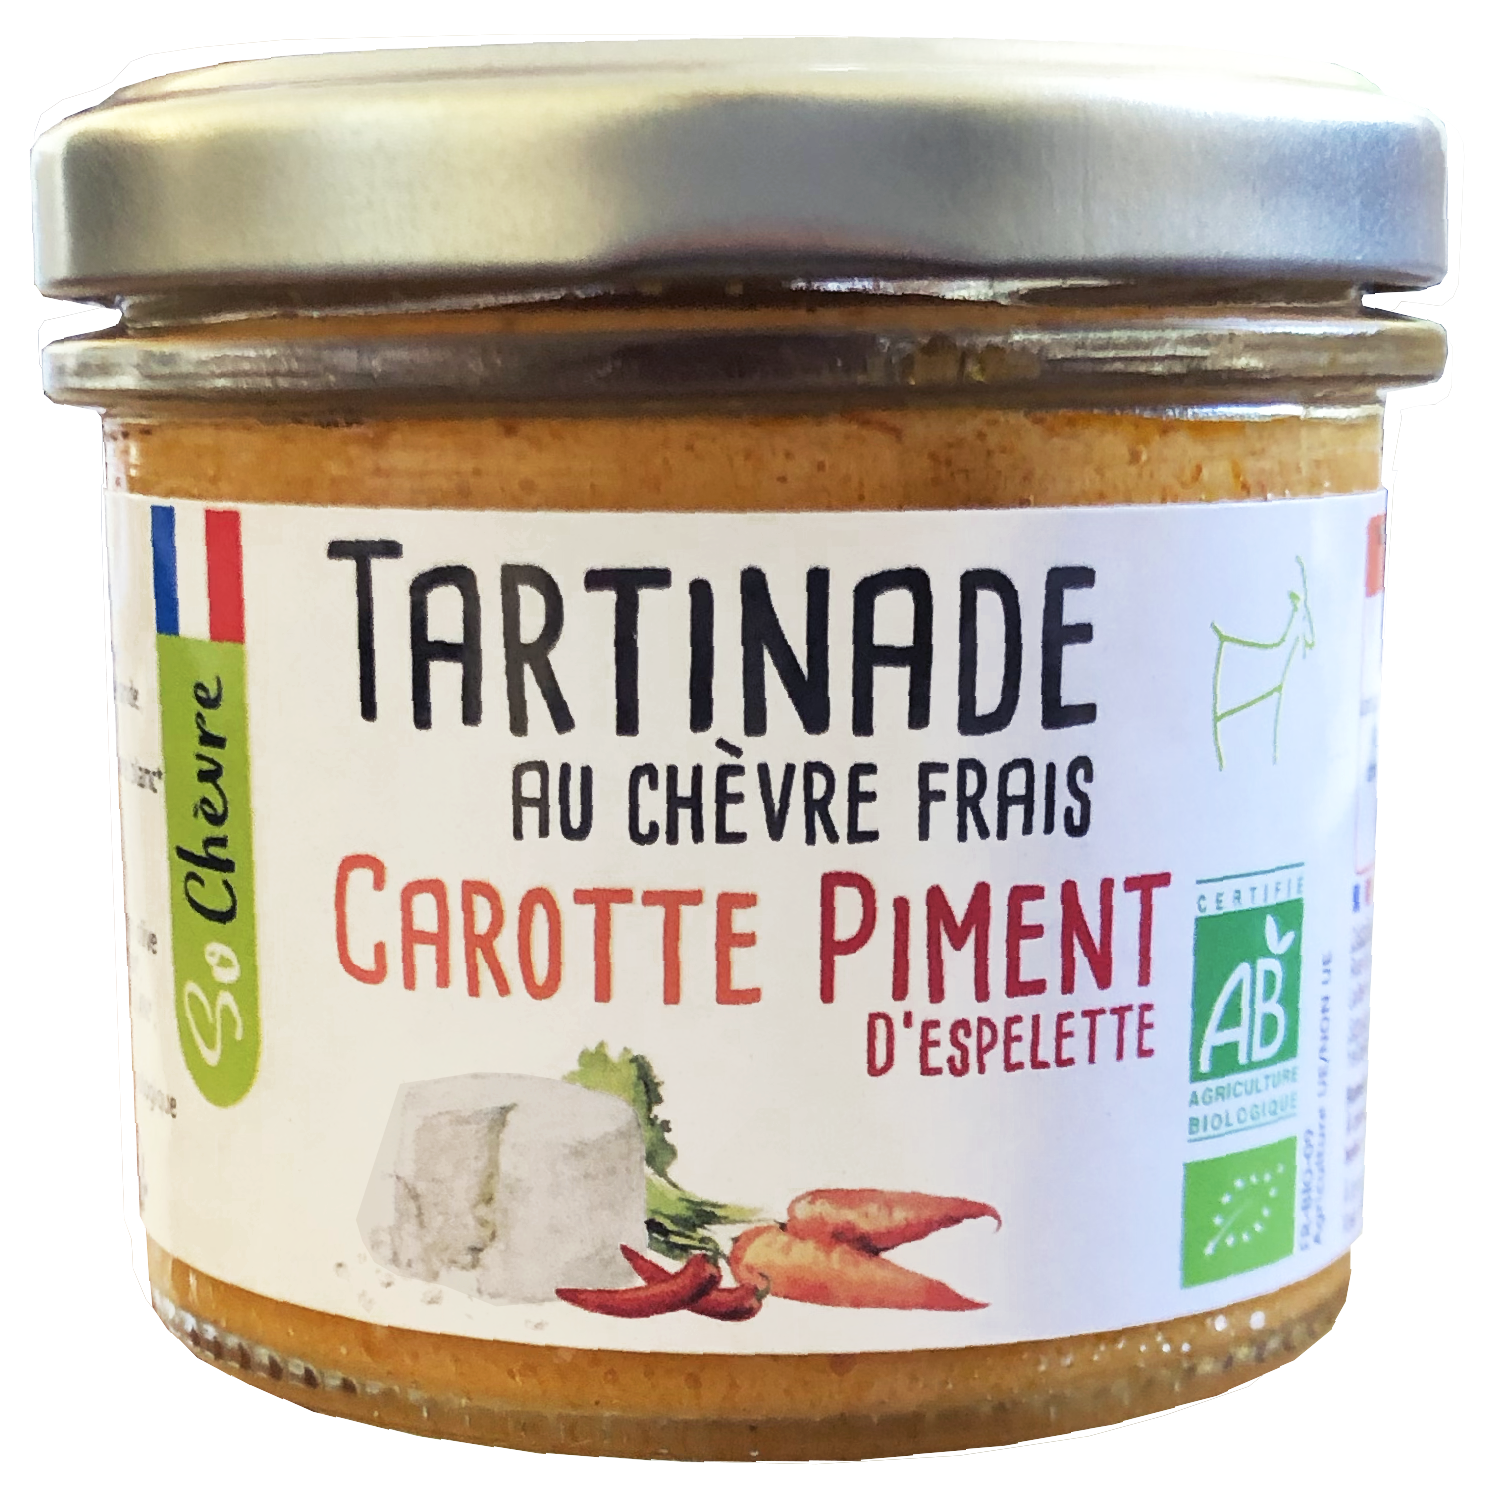 Tartinade carotte piment